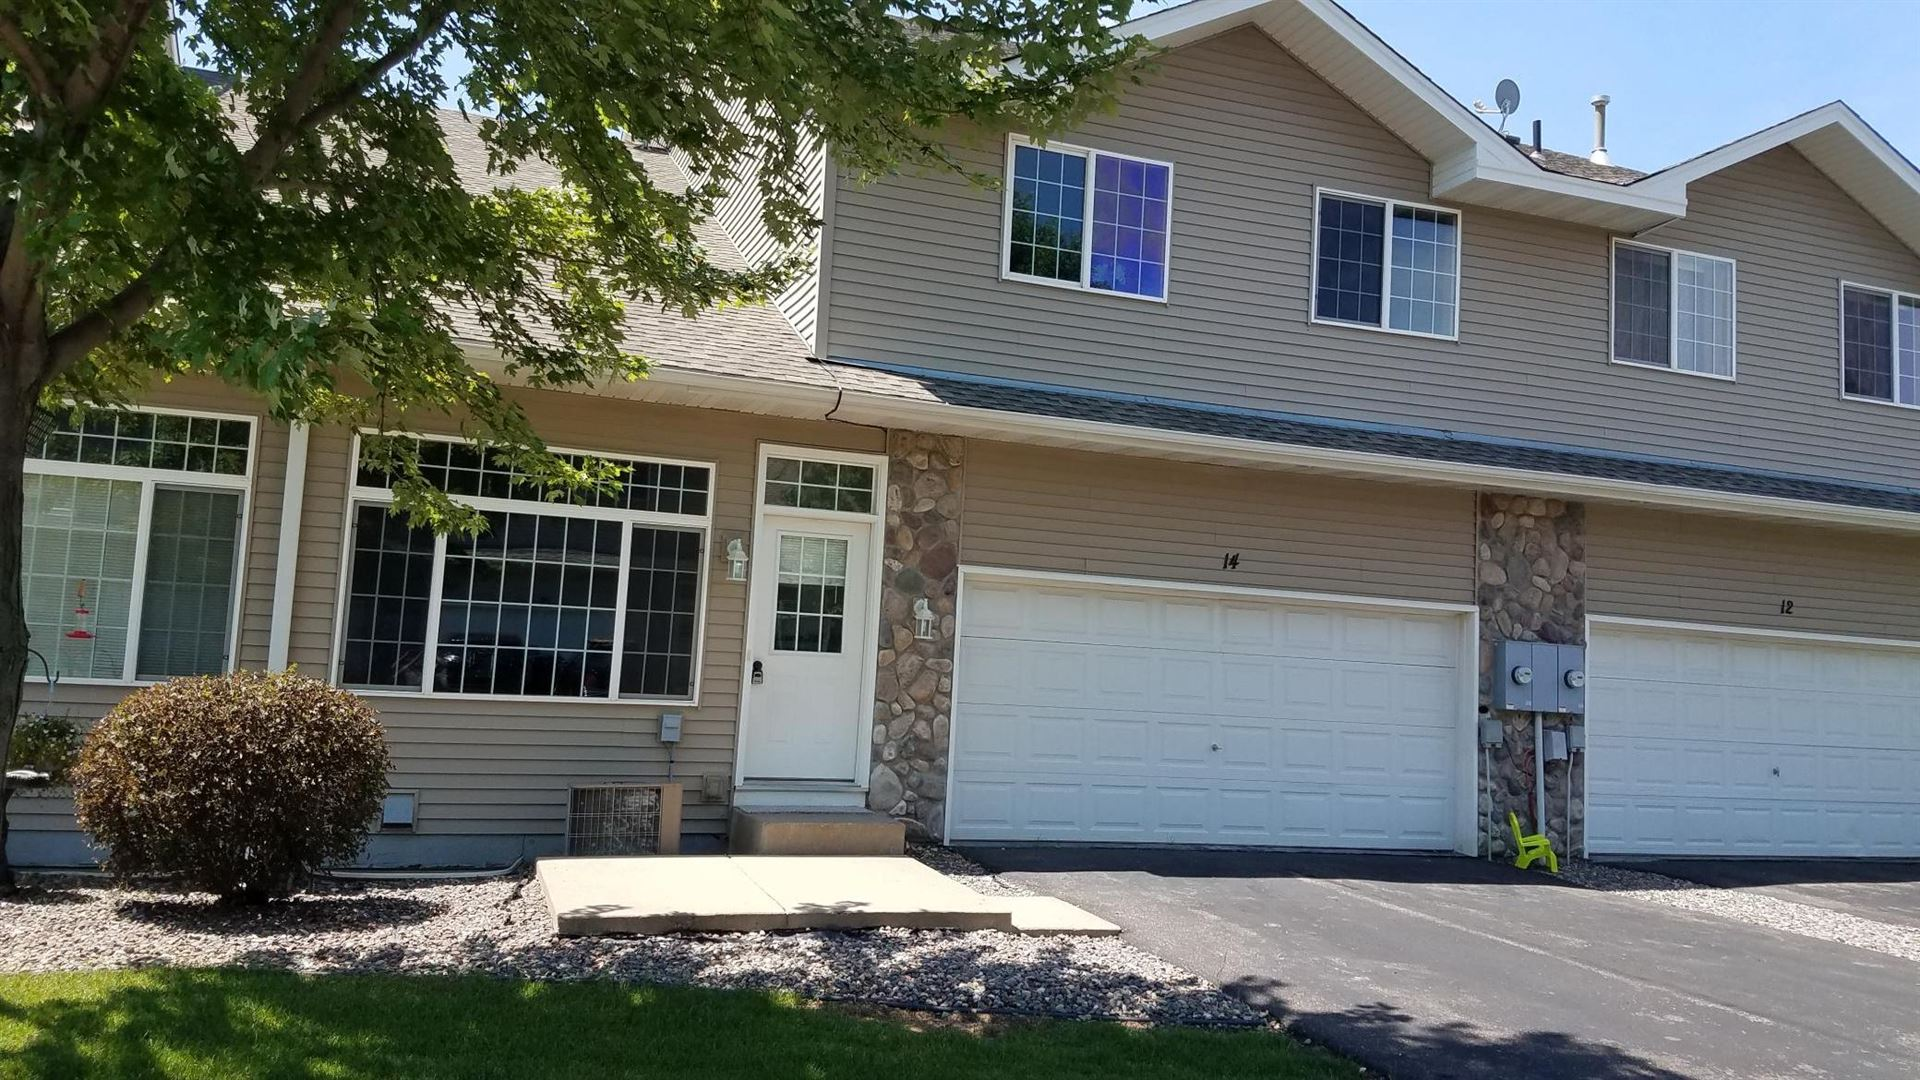 5420 144th Way NW #14, Ramsey, MN 55303 - MLS#: 5620641